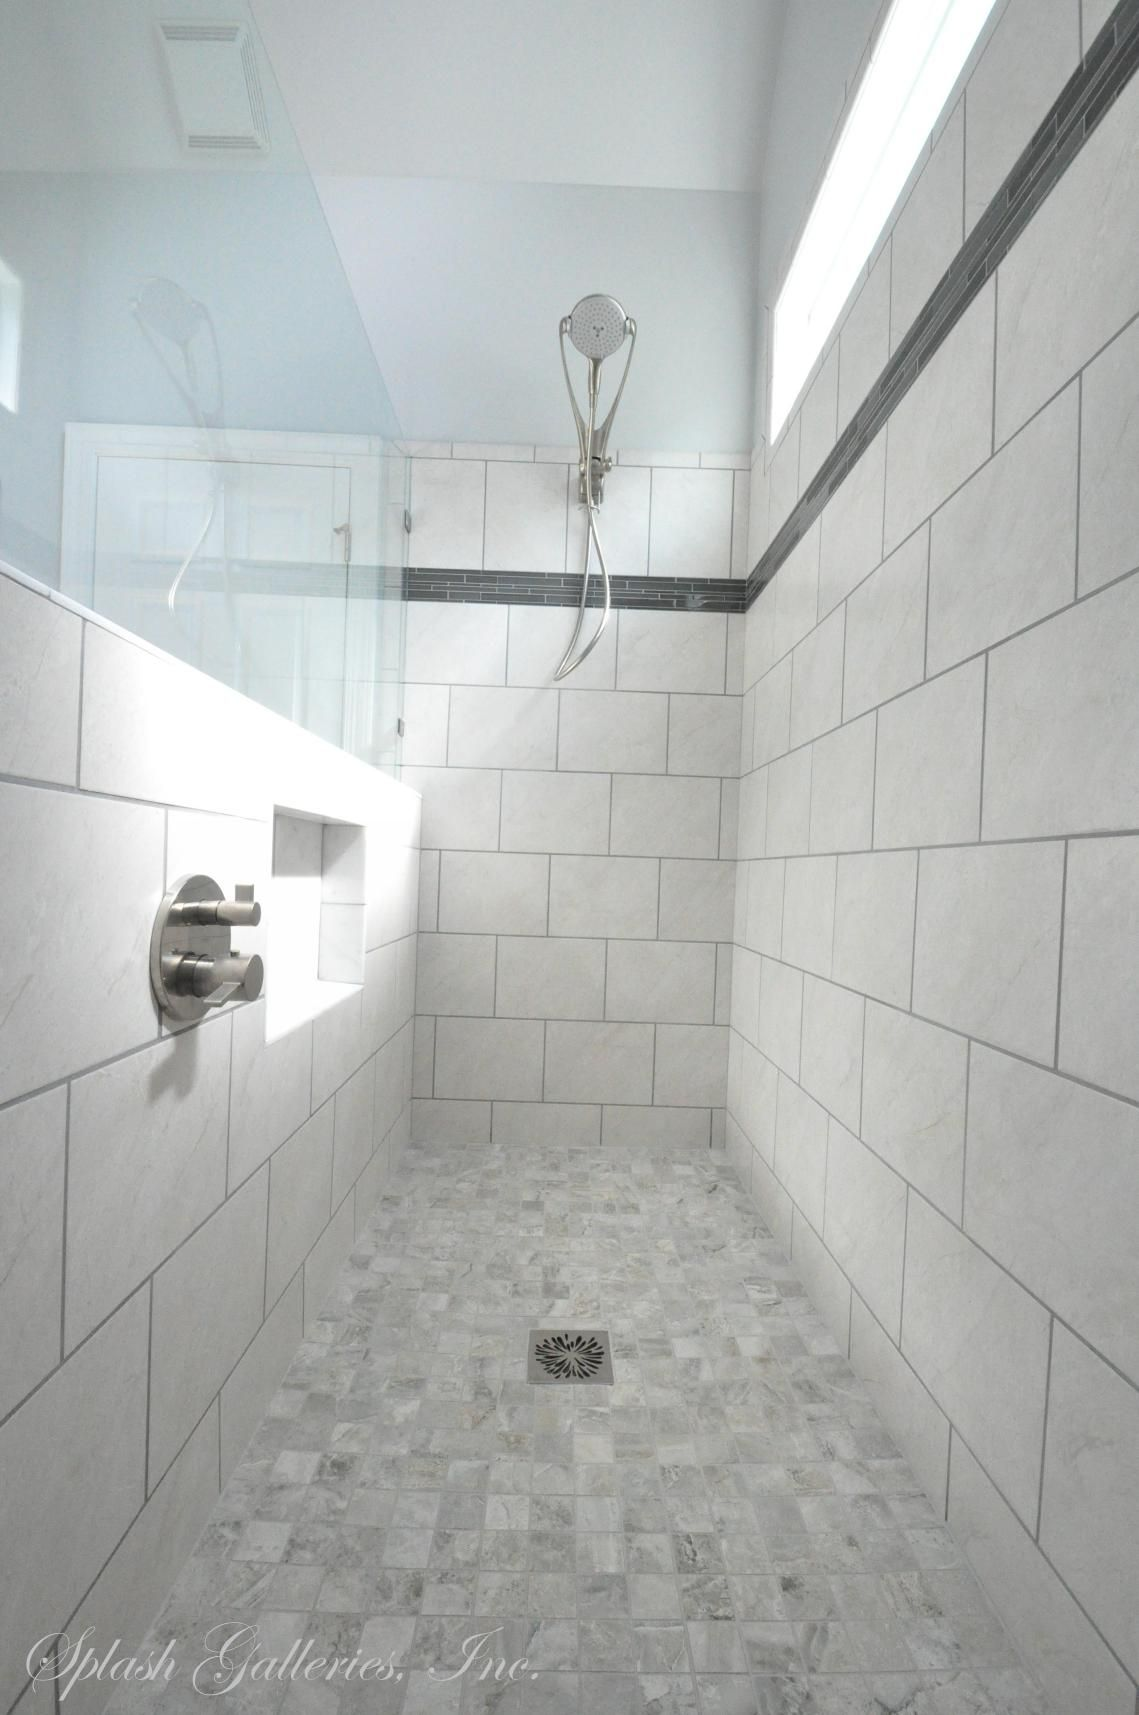 The Vim Products Level Entry Shower Makes Way For A Modern Updated Design That Is Fu Kitchen And Bath Showroom Bathroom Remodel Designs Master Bathroom Shower